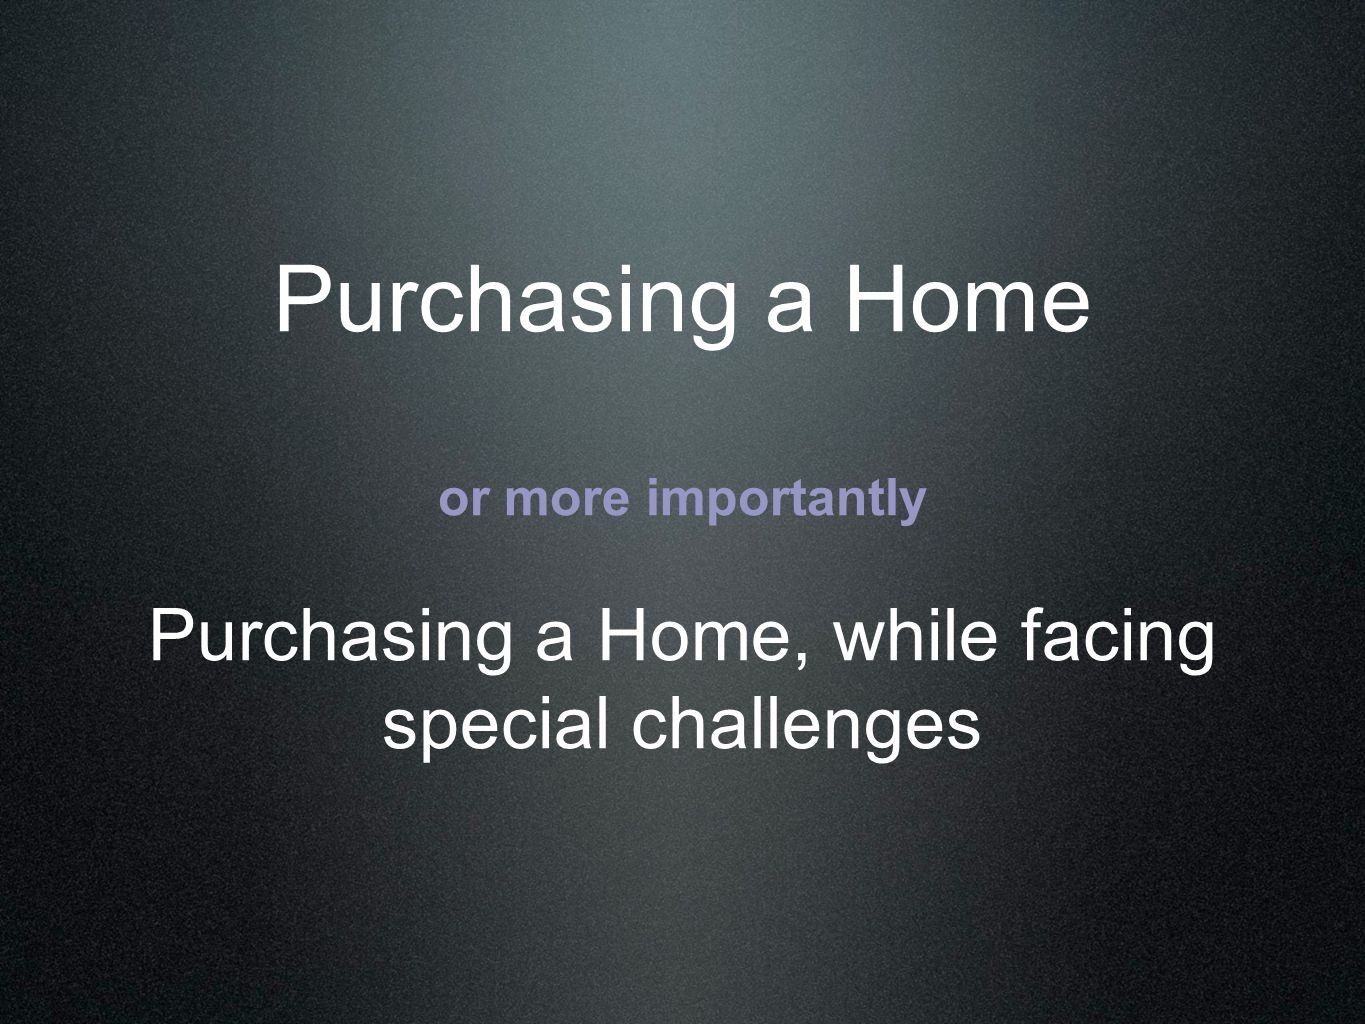 Purchasing a Home or more importantly Purchasing a Home, while facing special challenges